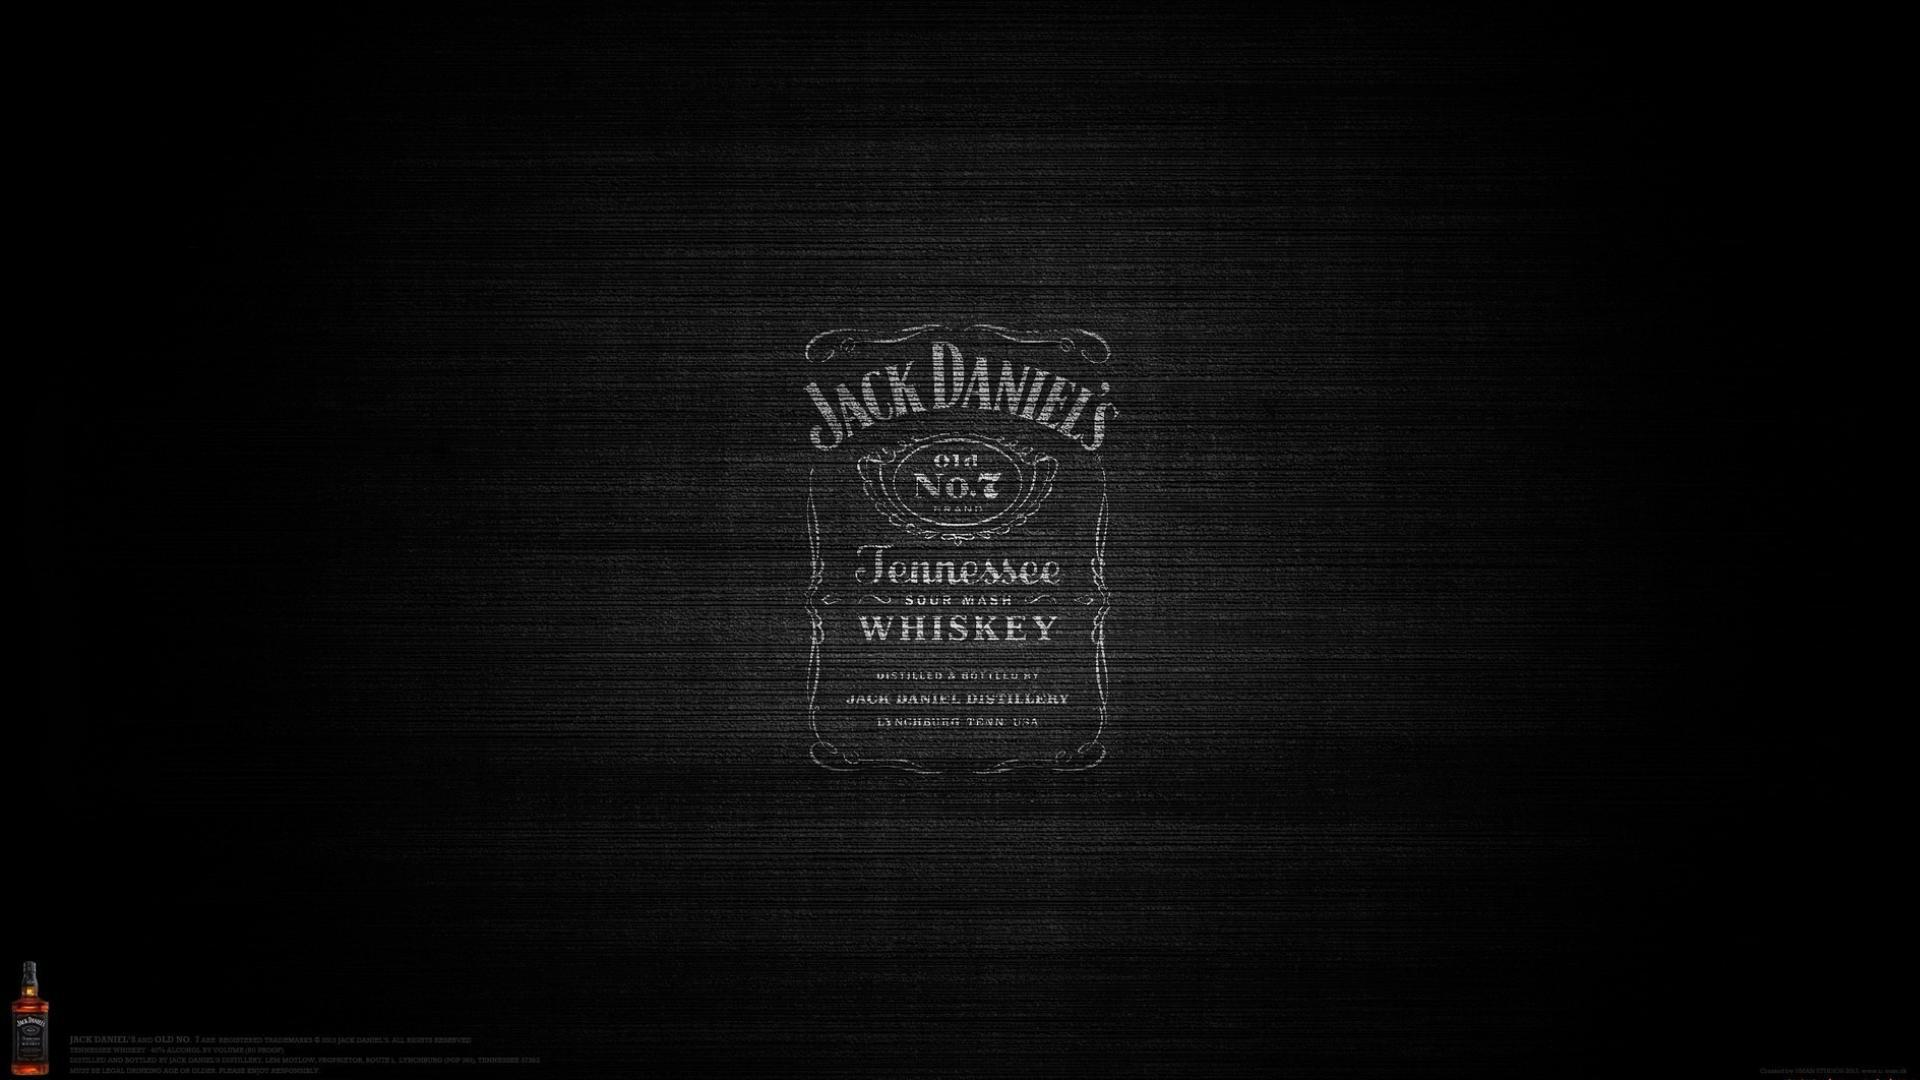 Jack daniels wallpapers images photos pictures backgrounds jack daniels high definition wallpapers voltagebd Images